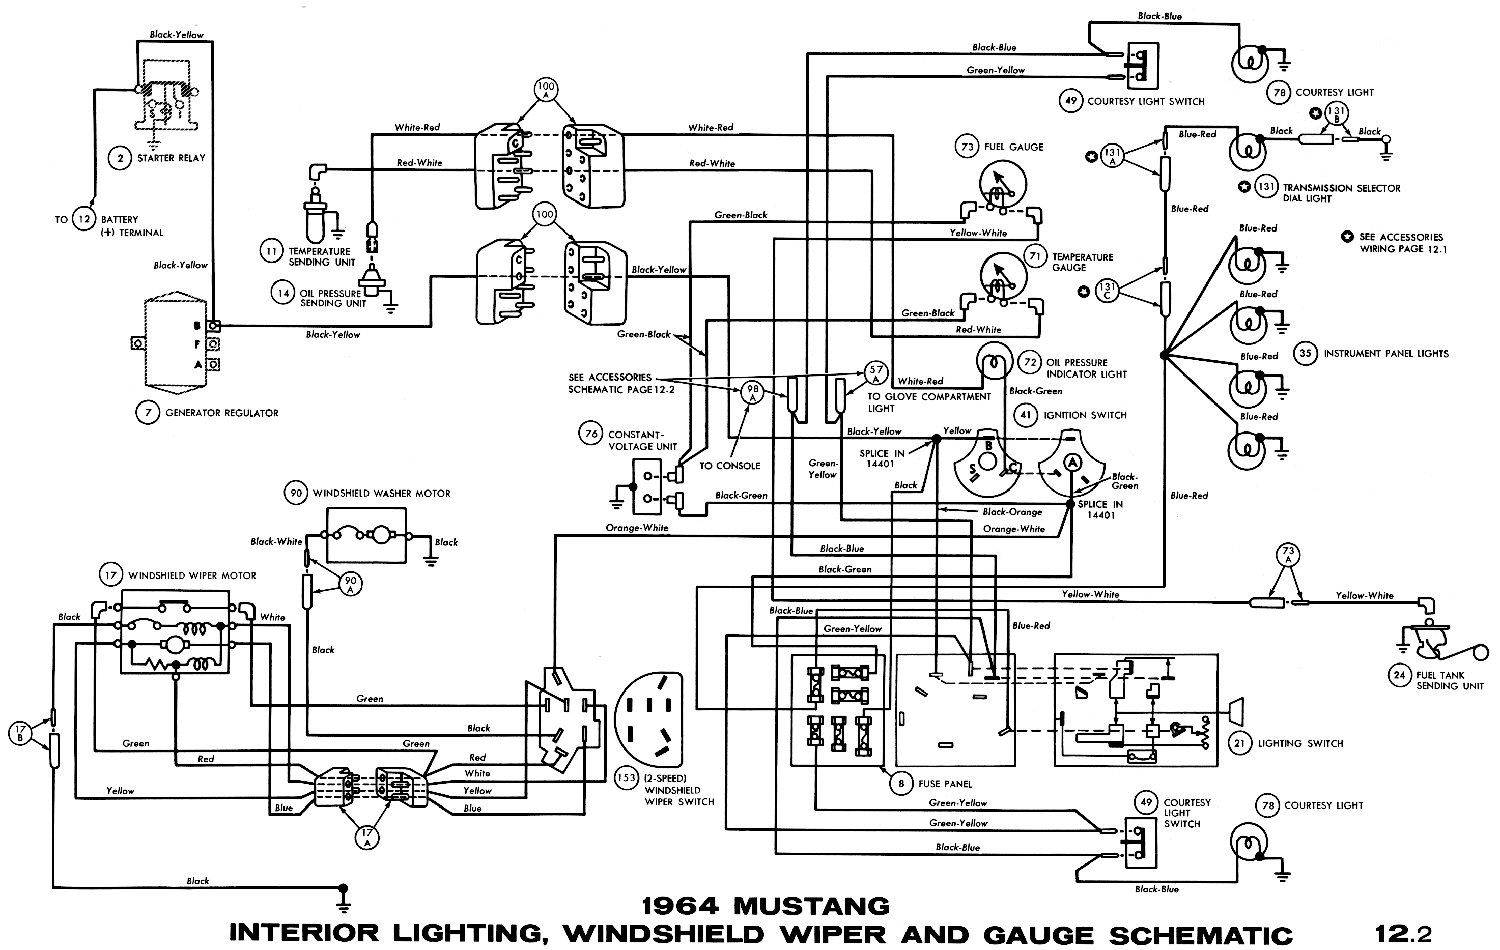 93 Mustang Alternator Wiring Diagram Trusted 1970 Ford 67 Interior Reveolution Of U2022 96